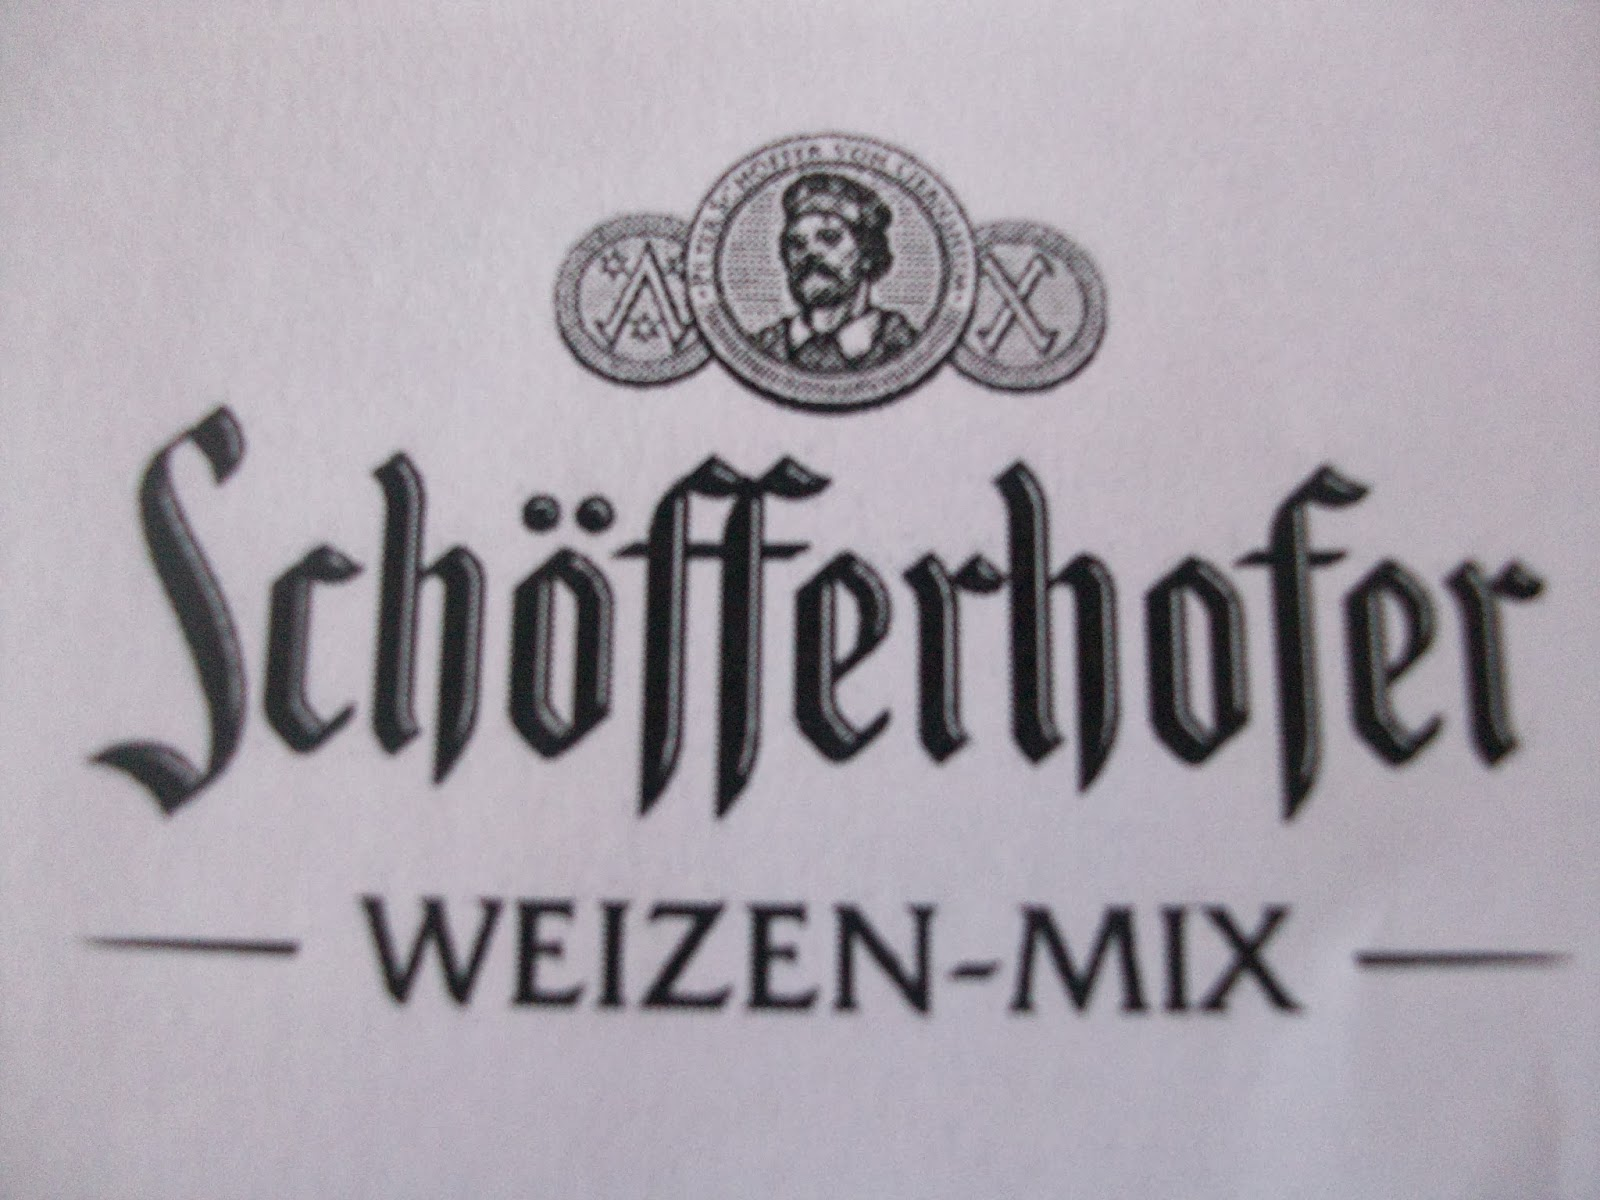 http://www.schoefferhofer.de/